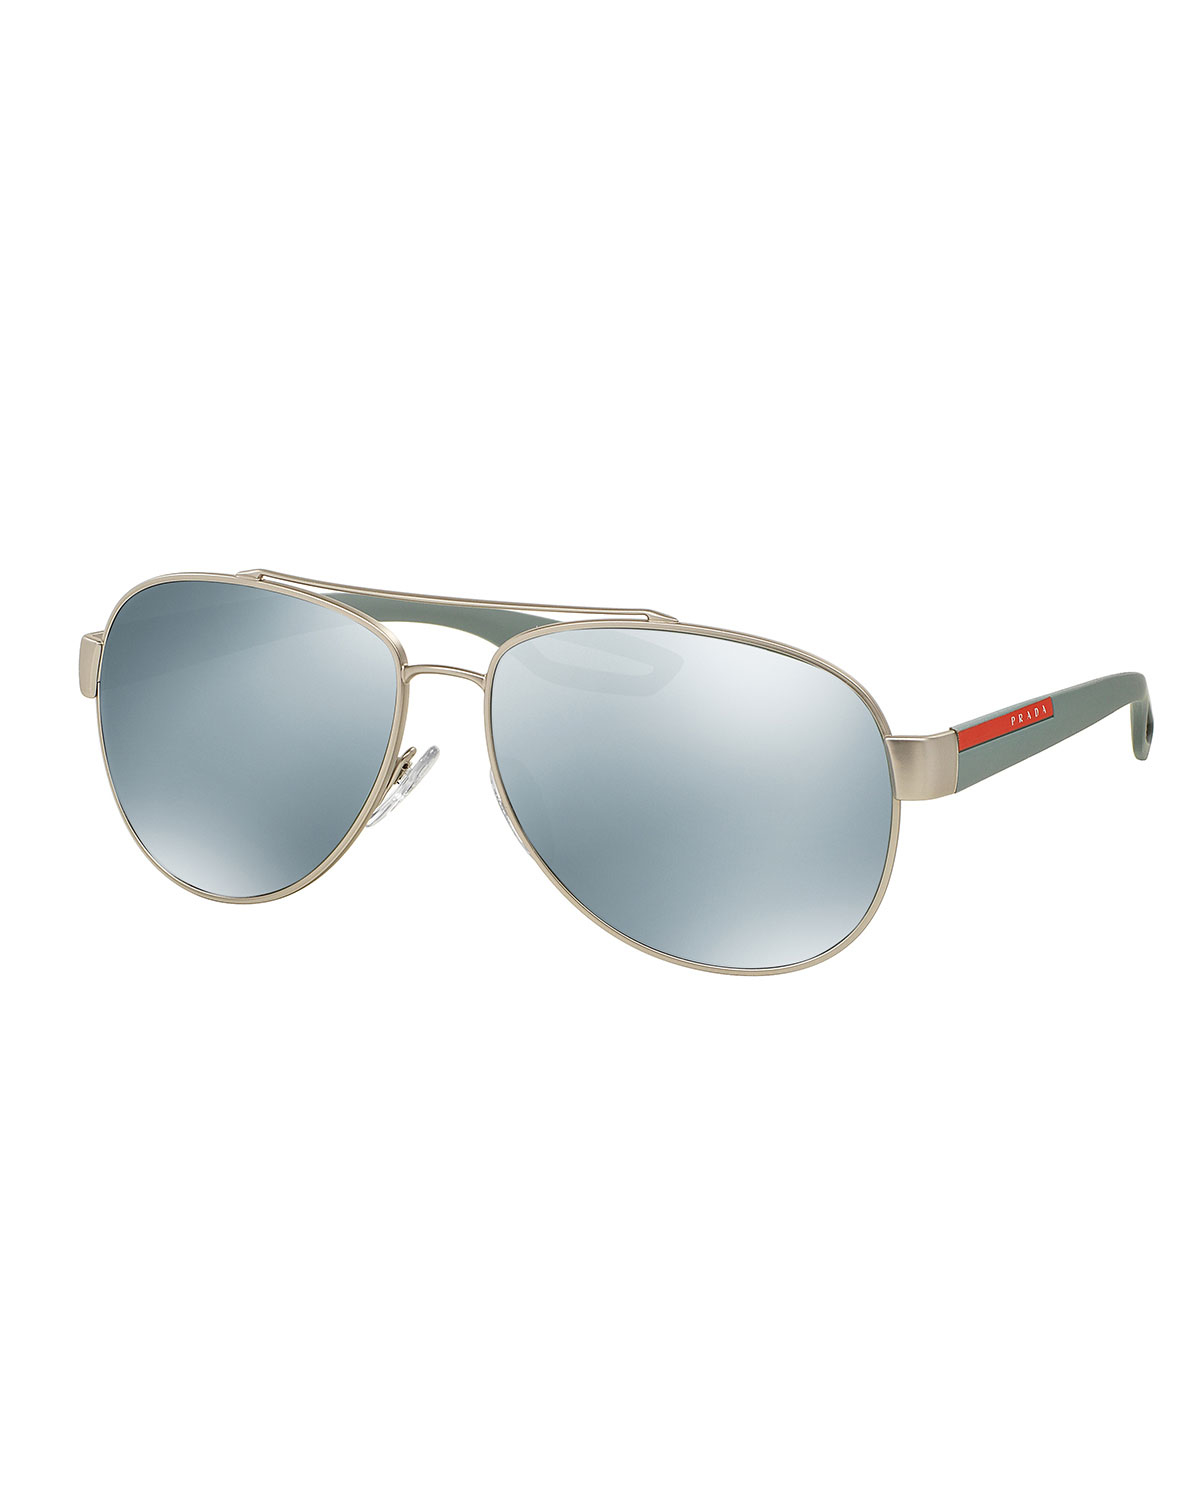 8540bdb2dc Gallery. Previously sold at  Bergdorf Goodman · Men s Mirrored Sunglasses